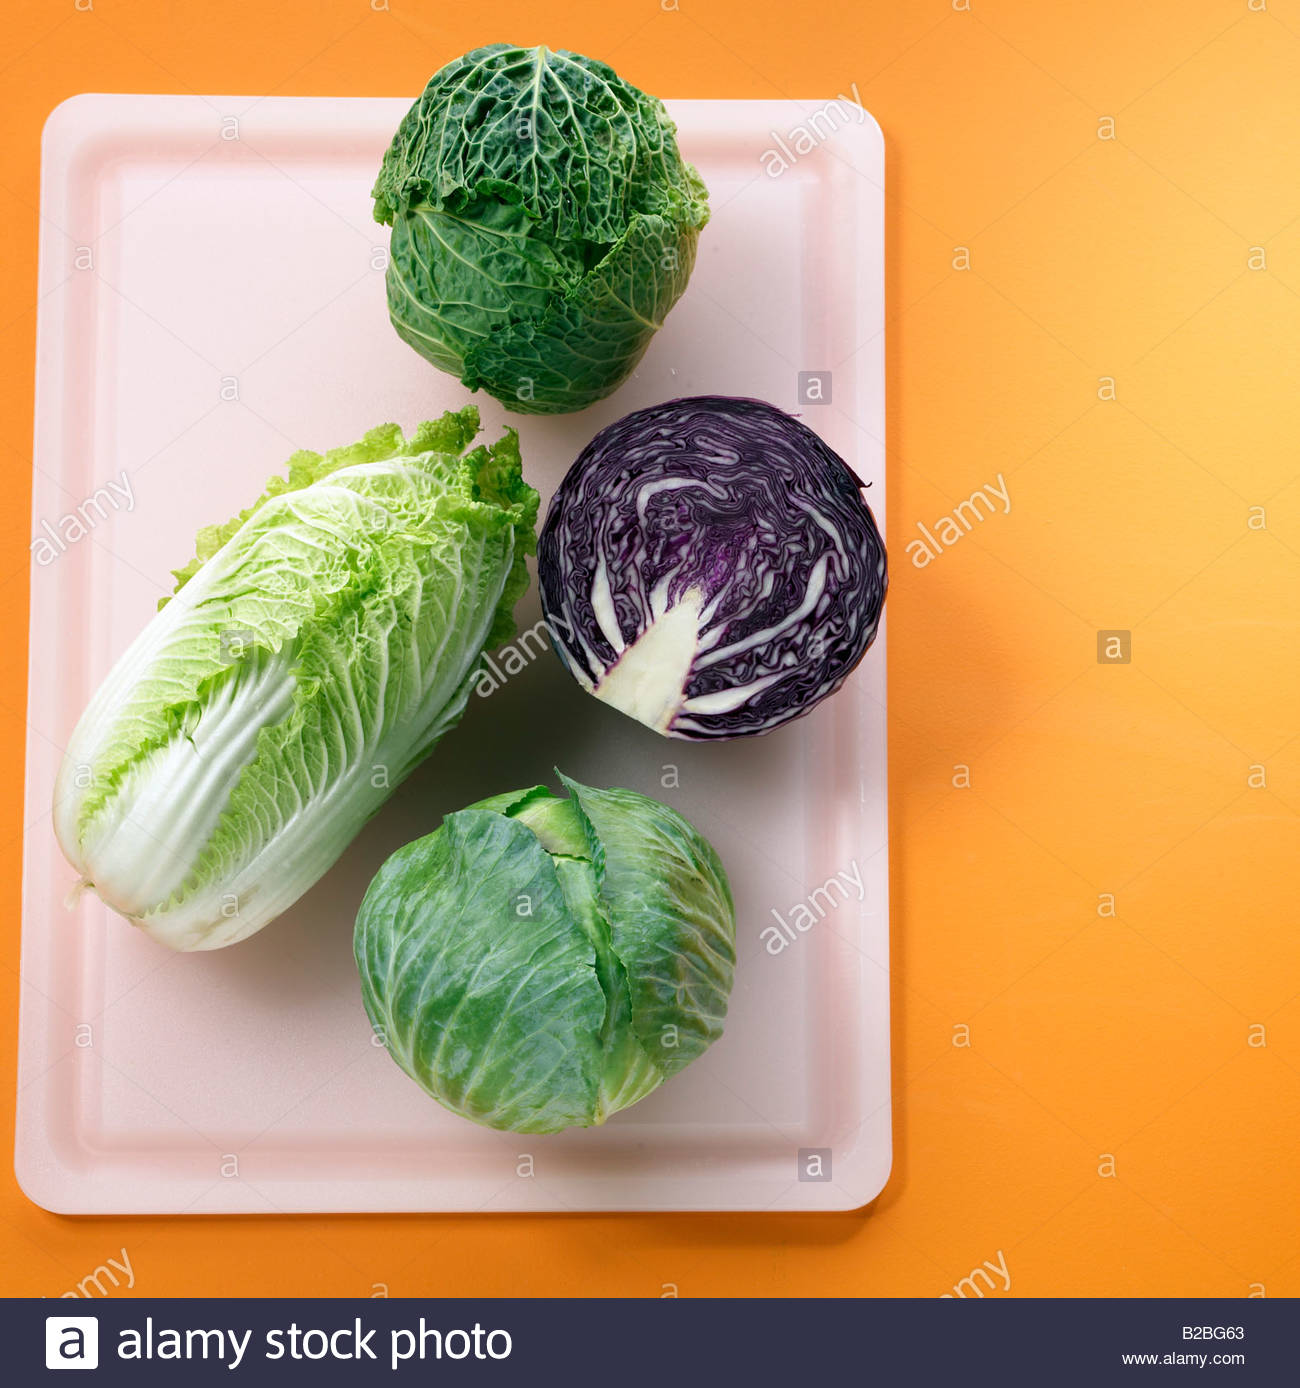 Close up of cabbage varieties - Stock Image